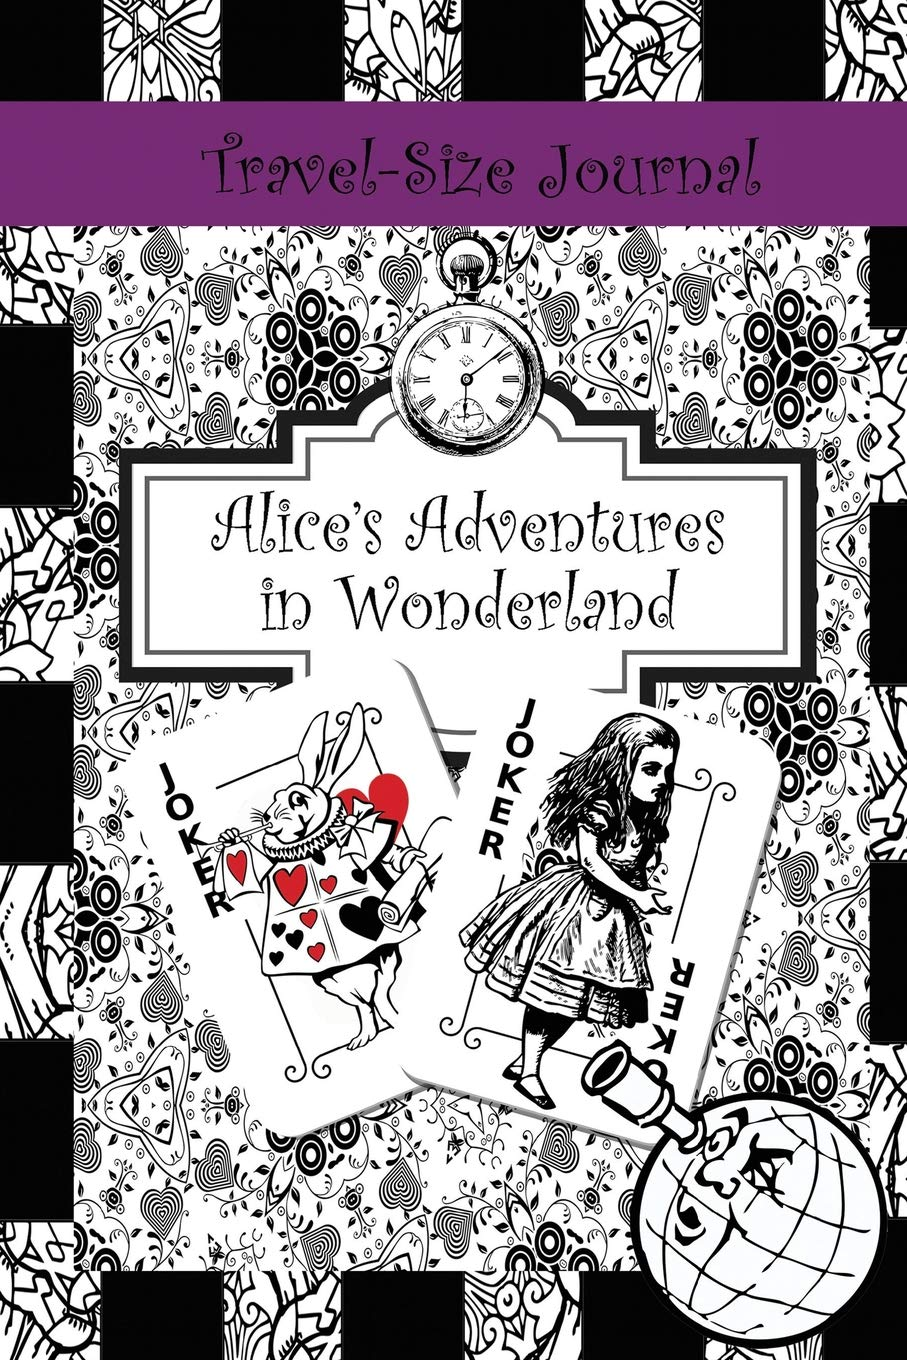 travel size journal alices adventures in wonderland 6 x 9 mini books notebooks diaries and journals for writing drawing doodling in volume 1